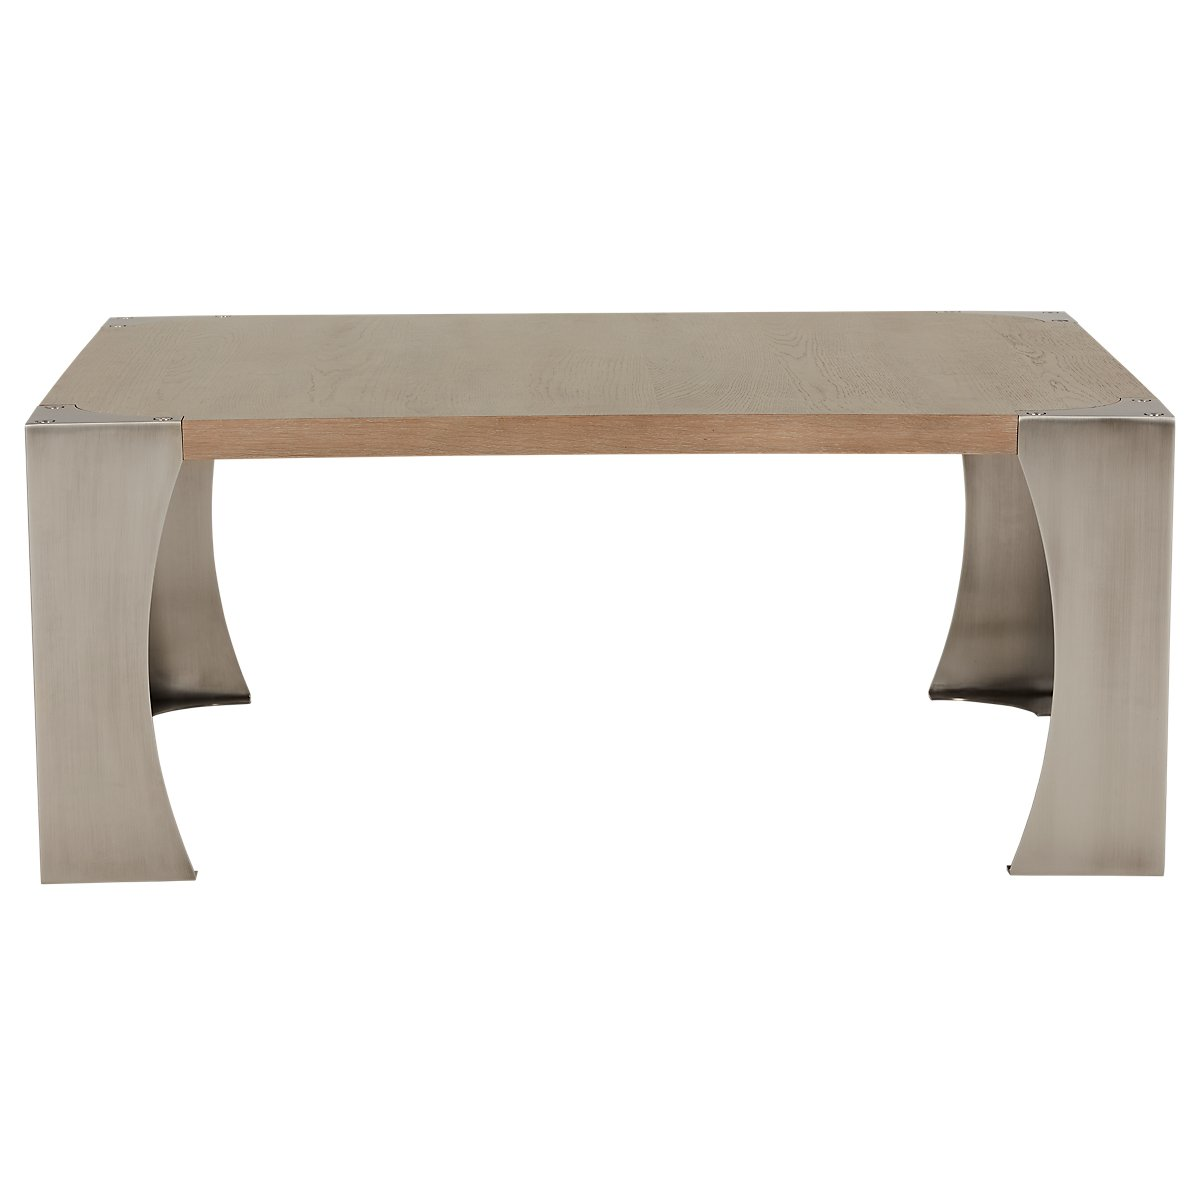 City Furniture Farr Light Tone Rectangular Coffee Table